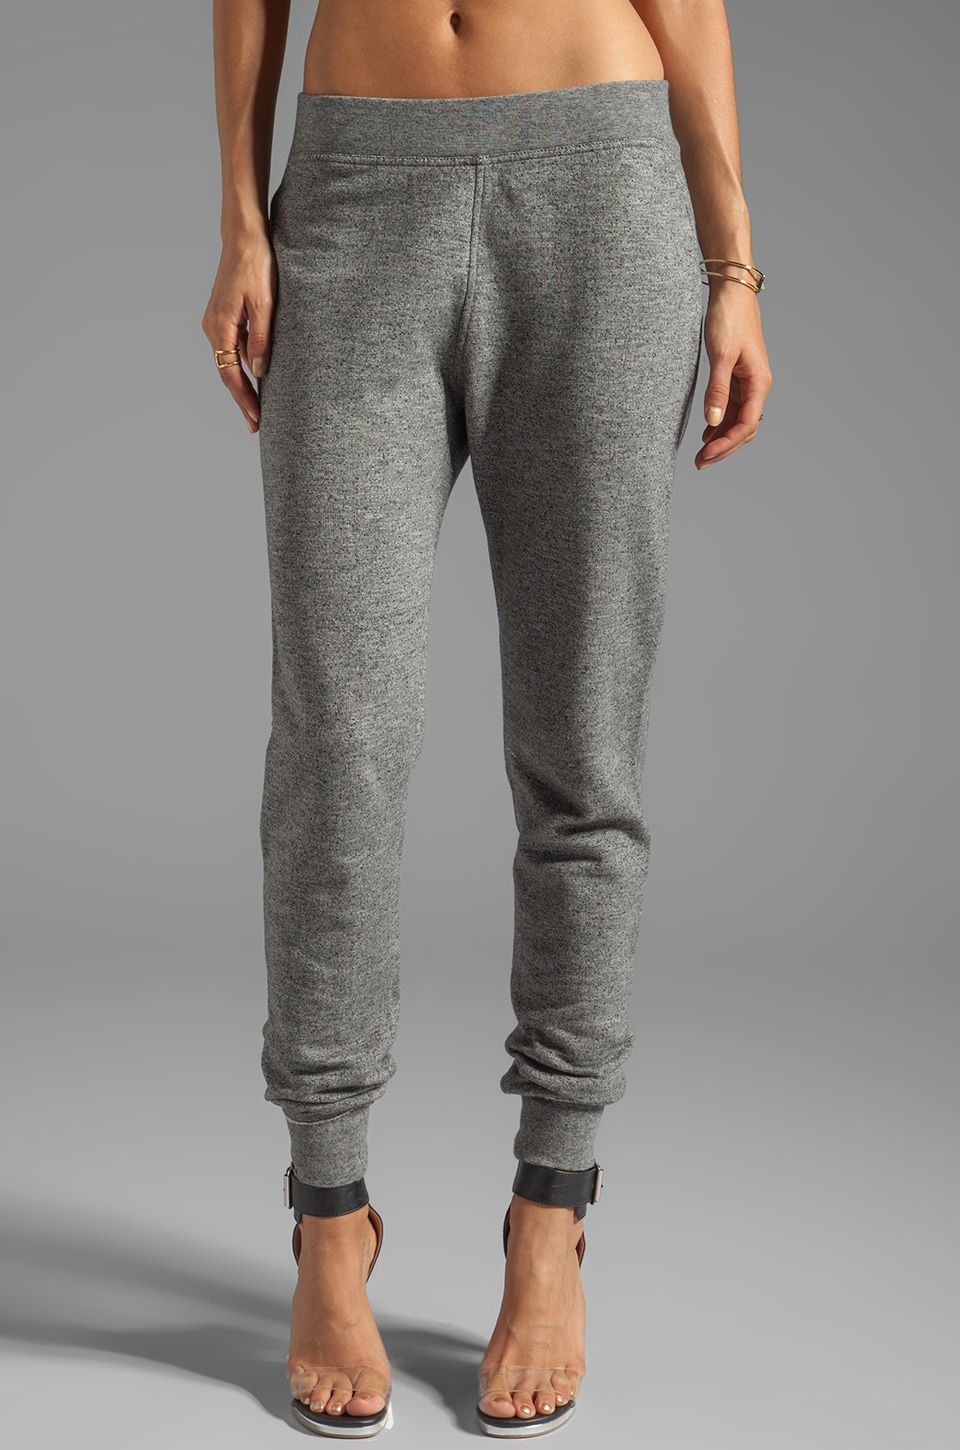 T by Alexander Wang Top Dyed Fleece Sweatpants in Charcoal